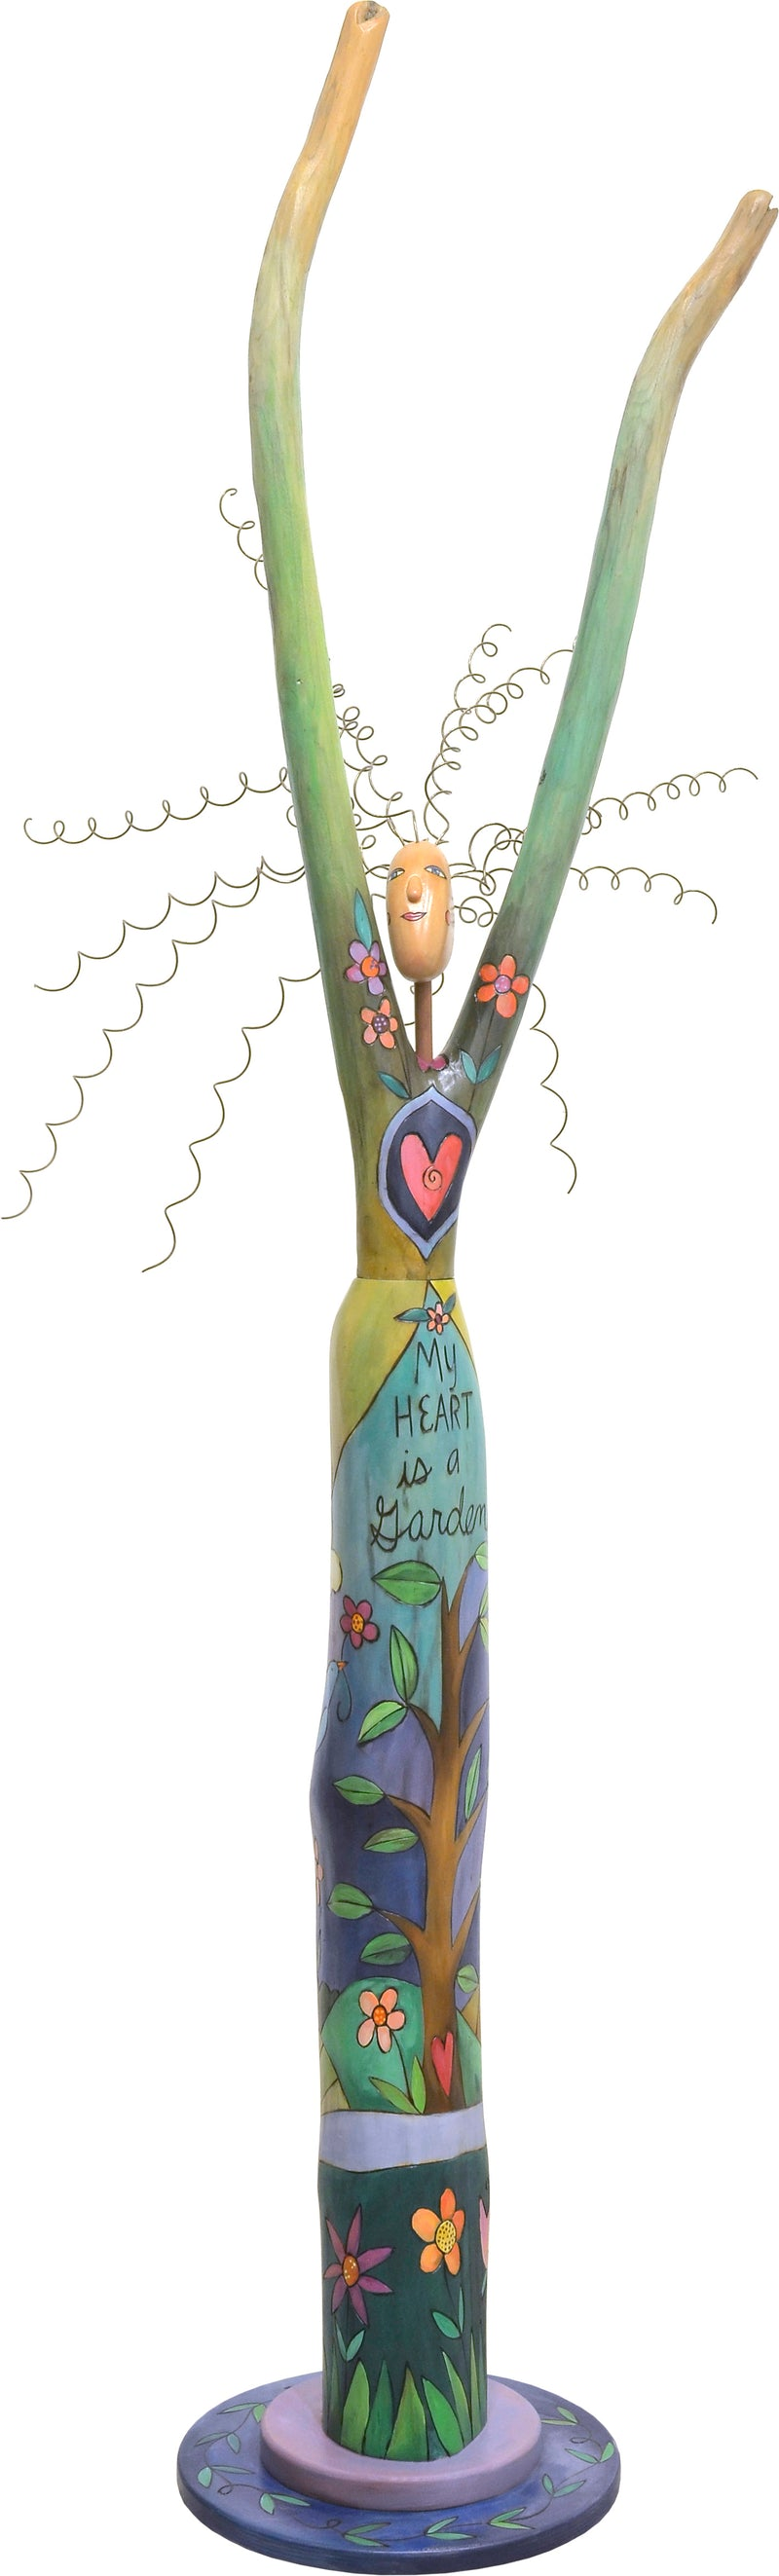 """My heart is a garden"" lady with a tree of life and heart medallion motifs"